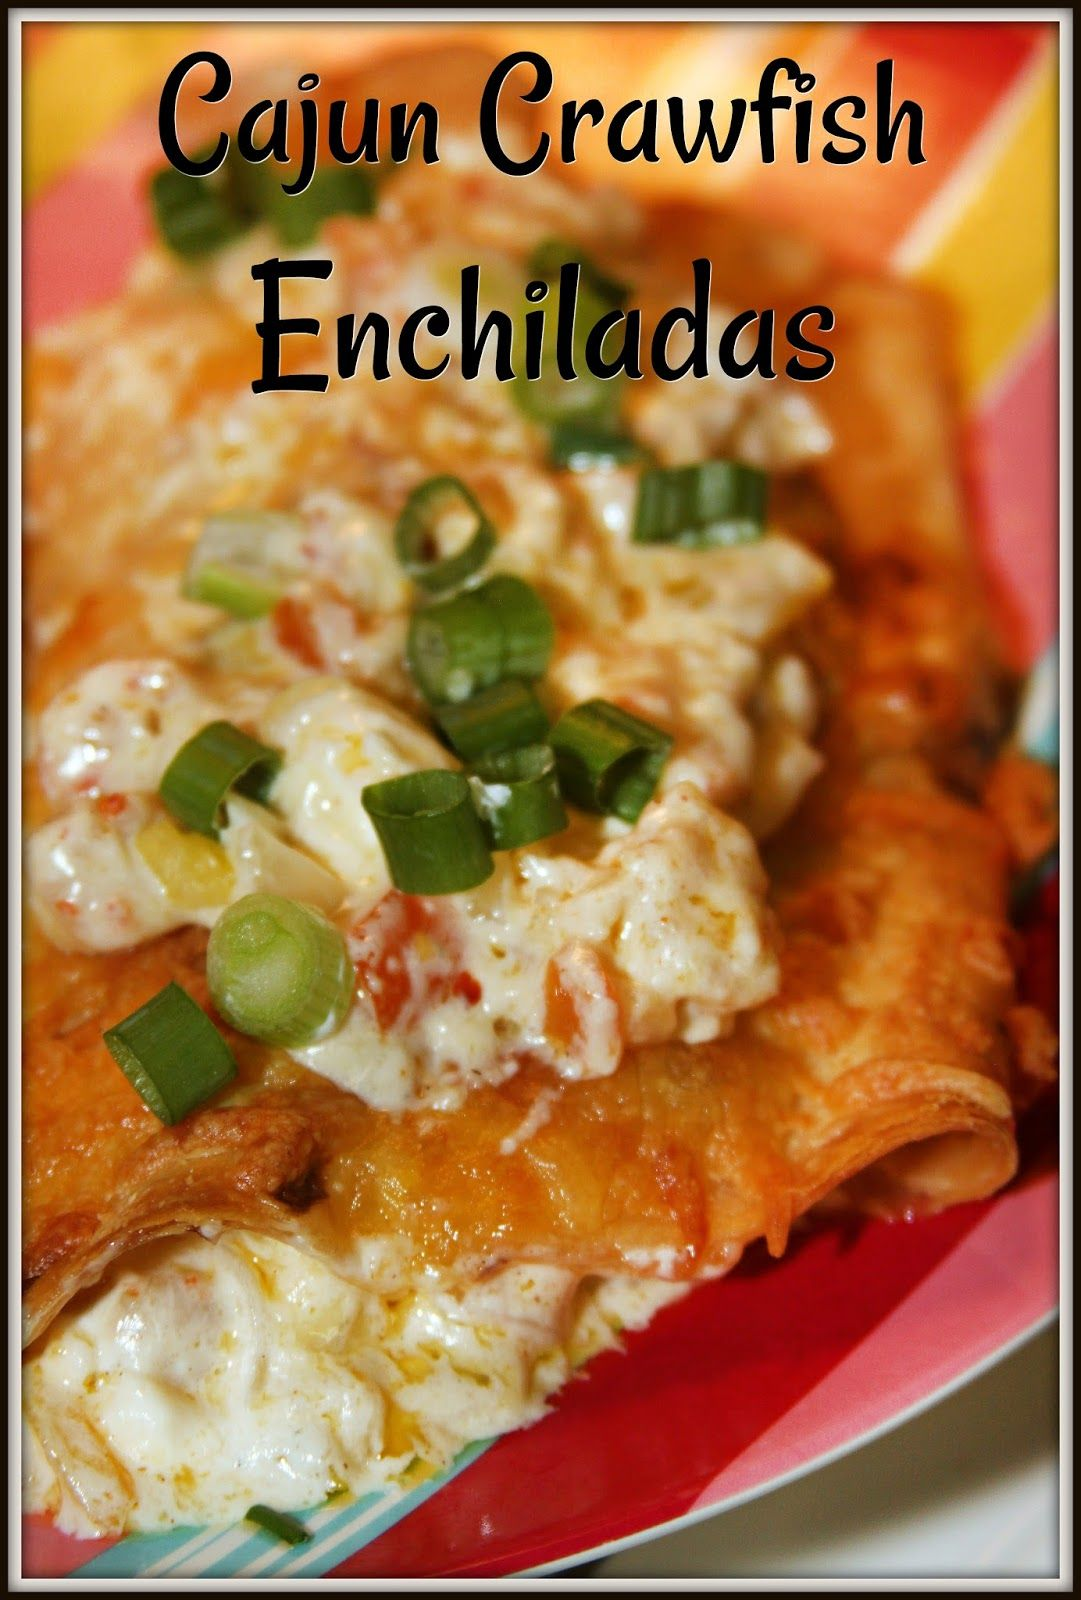 Cajun Crawfish Enchiladas #cajuncooking